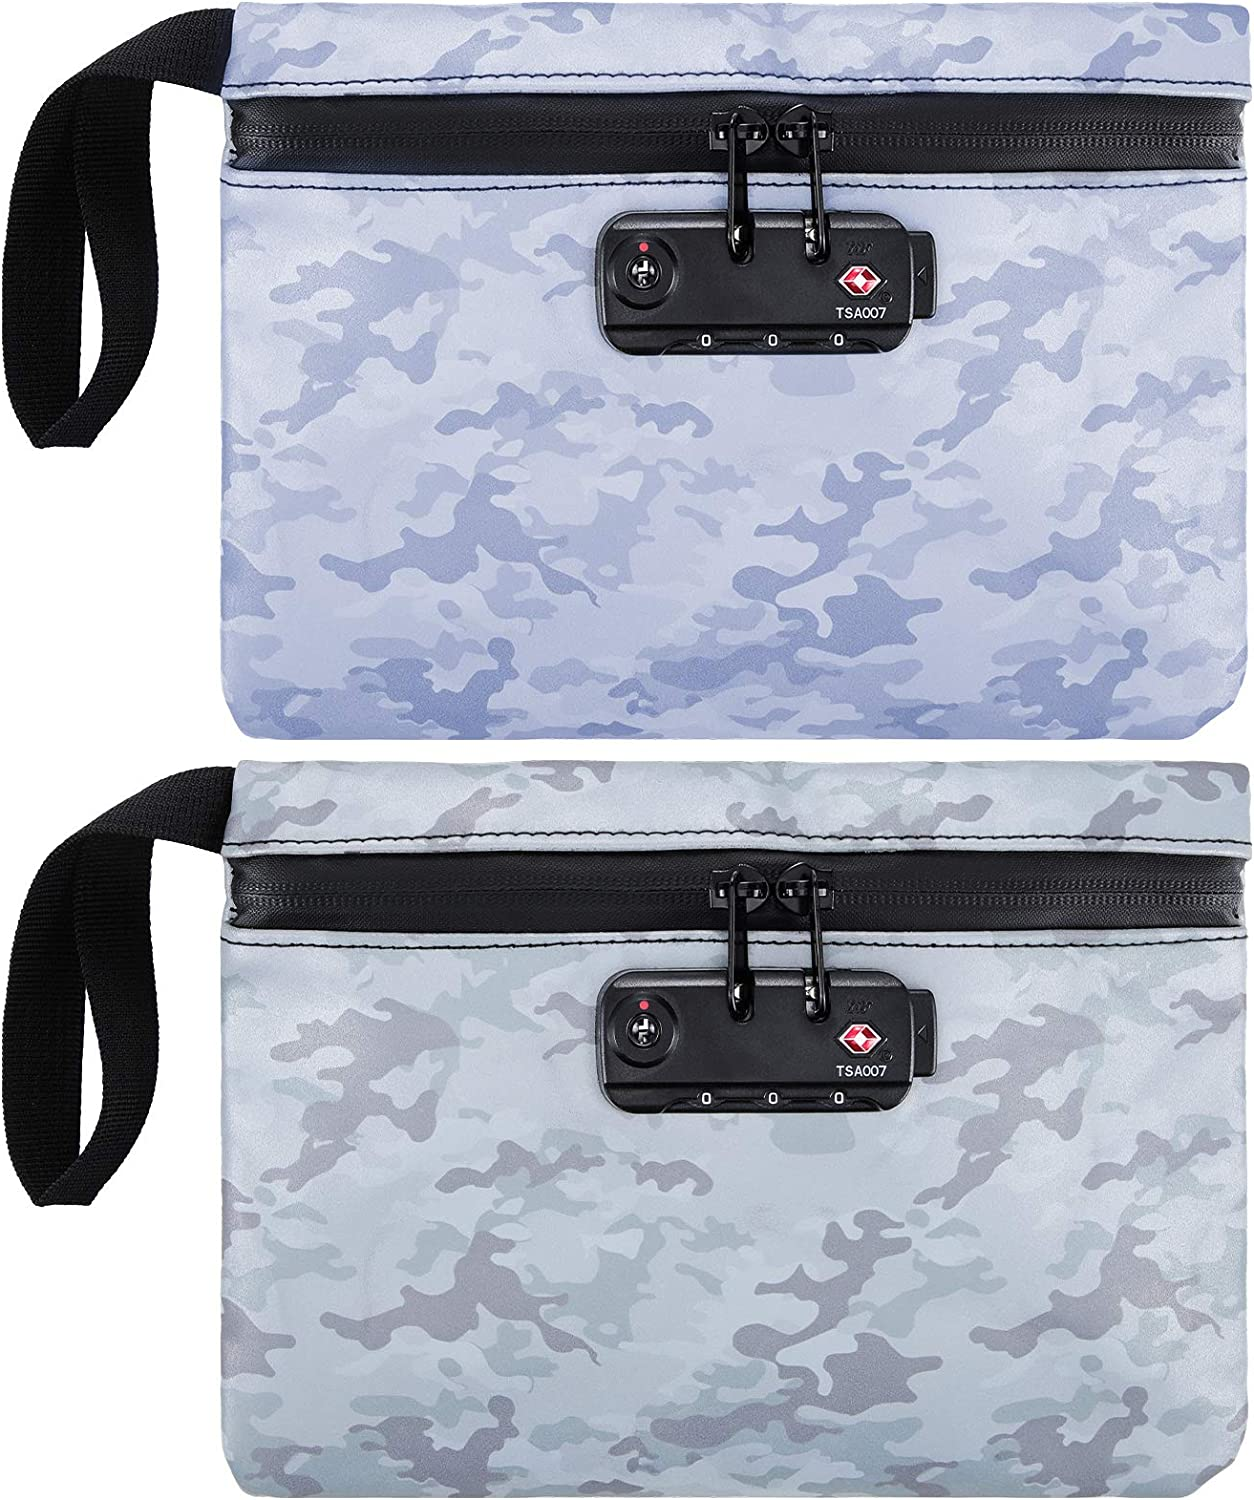 2 Pieces Smell Proof Bag with Combination Lock, Smell Proof Multi Purpose Lock Bag or Smell Proof Pouch Easy Access to Keys, Coins, Cell Phone When Travel and Driving